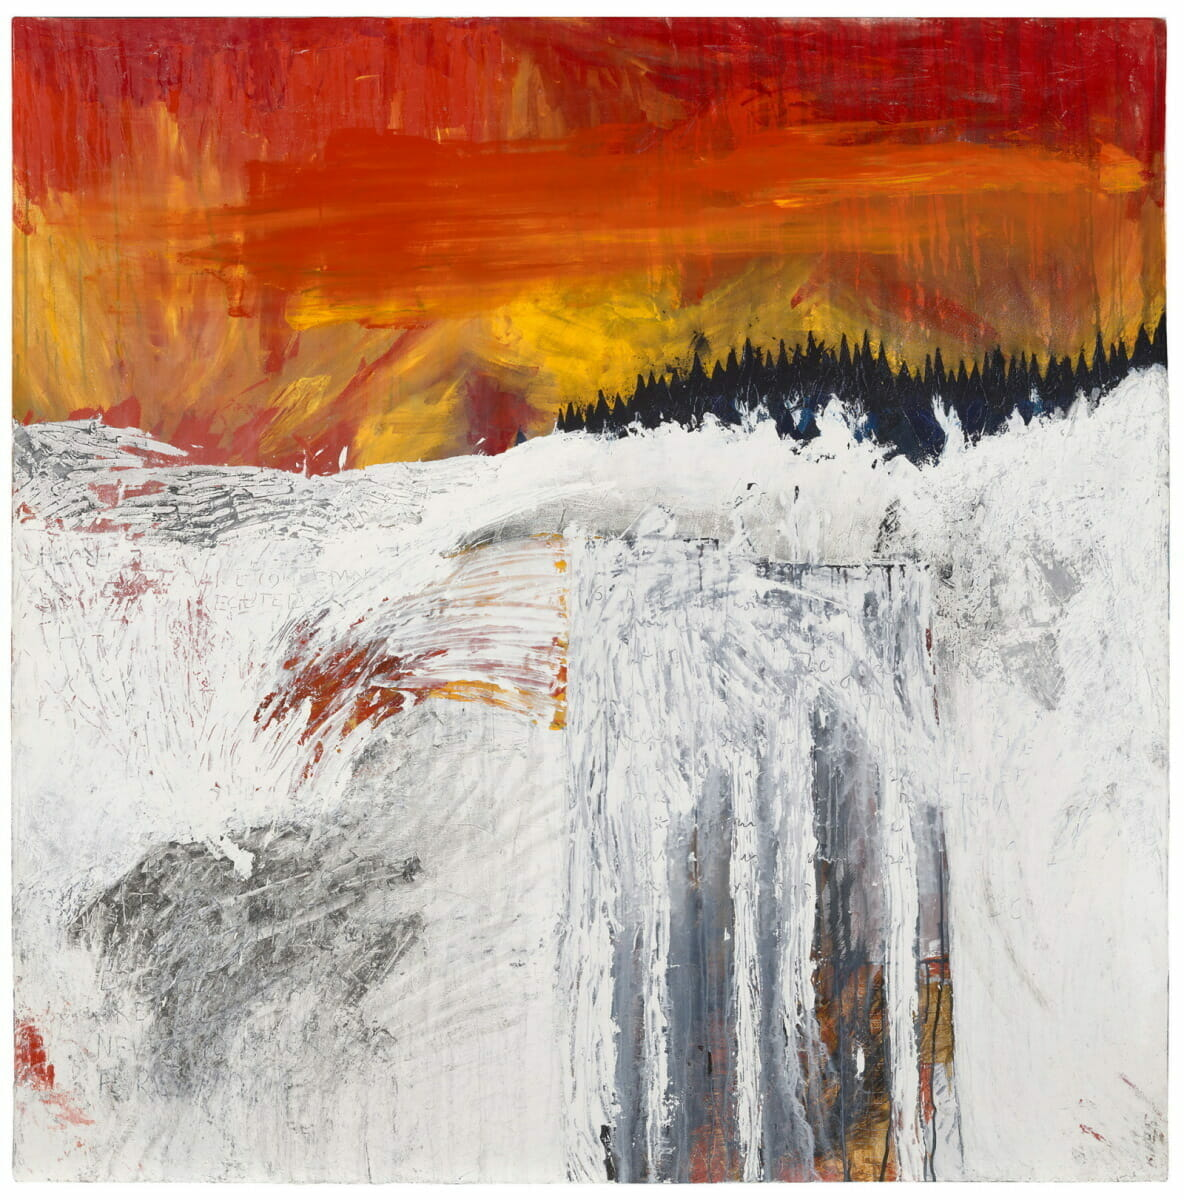 Artwork Created For A Radiohead Album Cover Is Getting Auctioned At Christie's